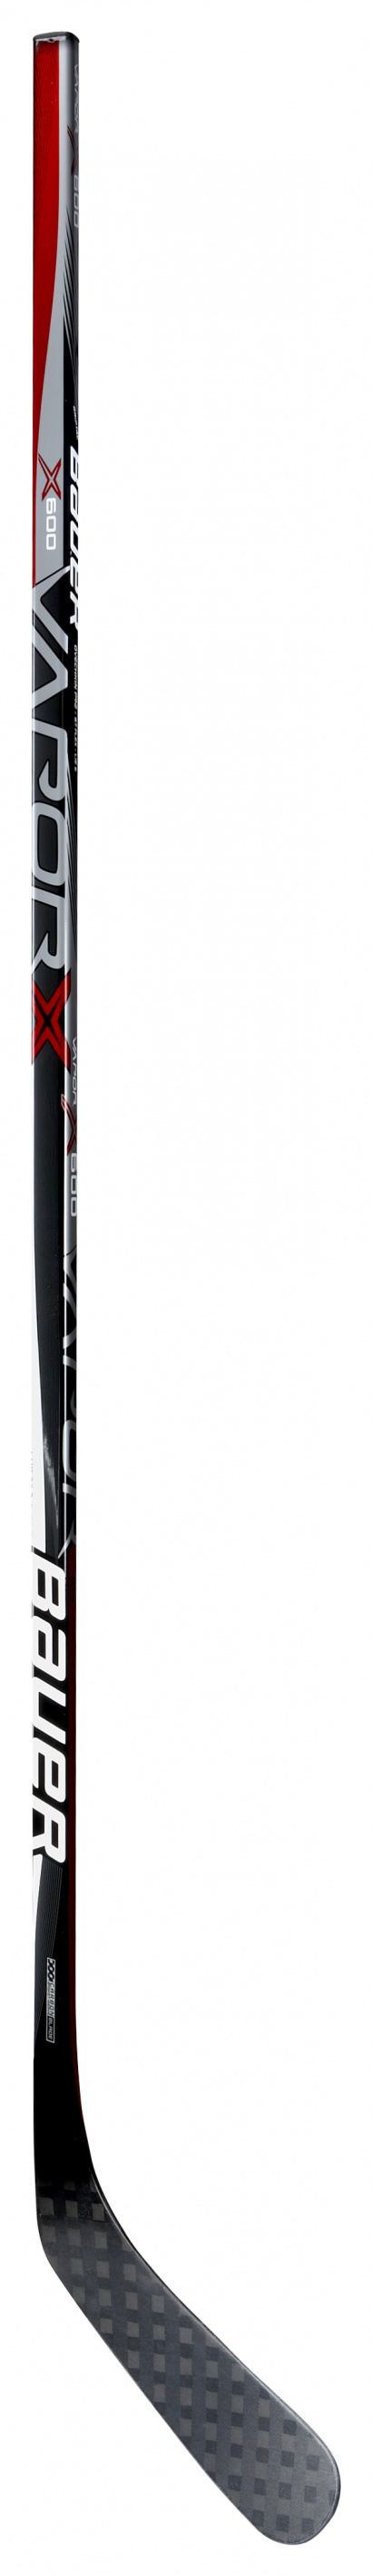 Hockey Stick Bauer VAPOR X 600 GRIP-S16 Int 60